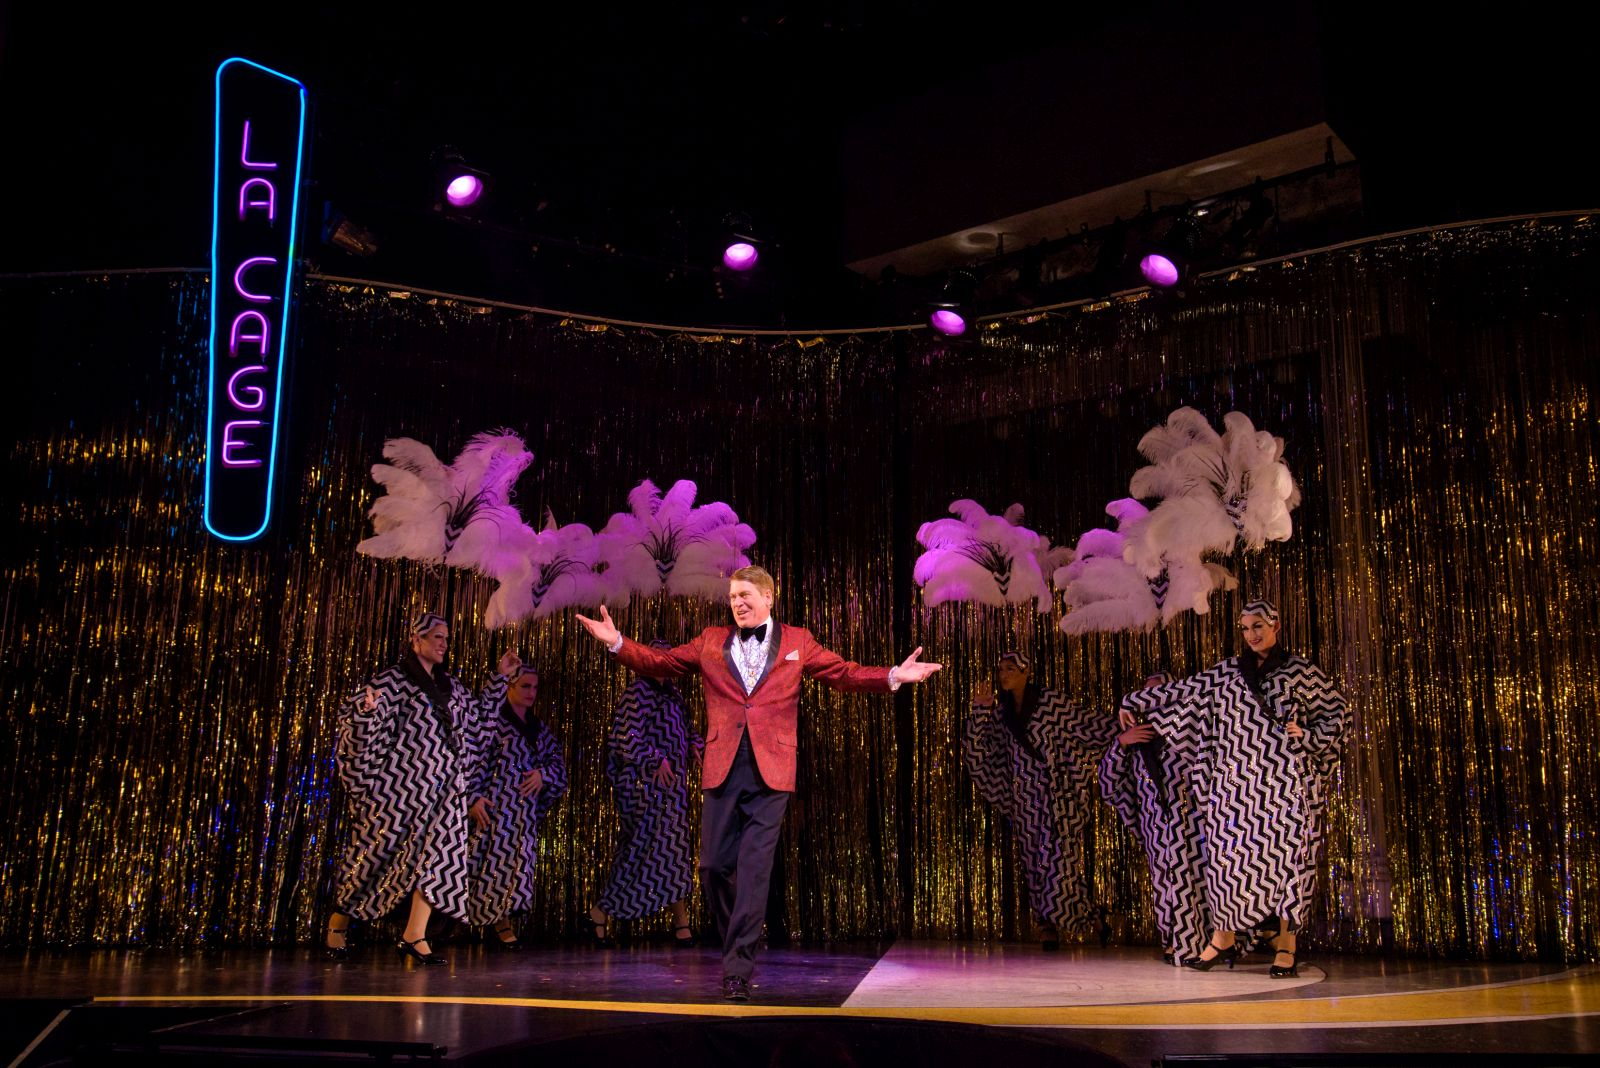 Norman Moses (Georges) with the Cagelles in Skylight Music Theatre's La Cage Aux Folles